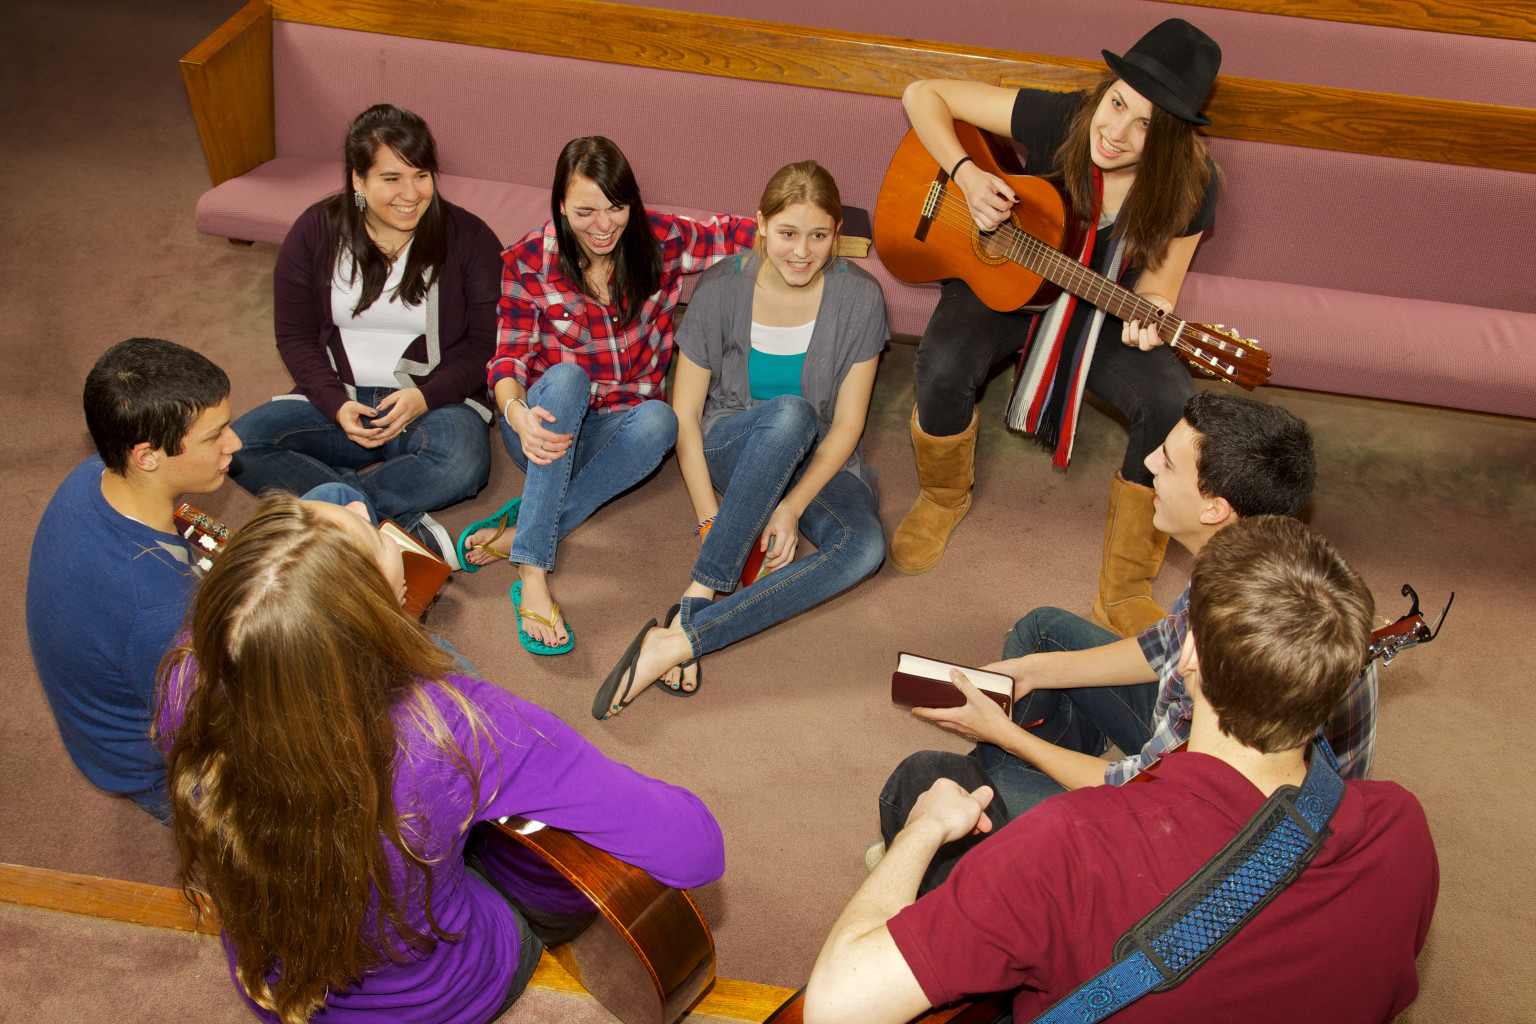 herriman single women Fact case studies of congregations engaging young adults  a member of the herriman young single adult ward of  place for more than 200 young men and women.